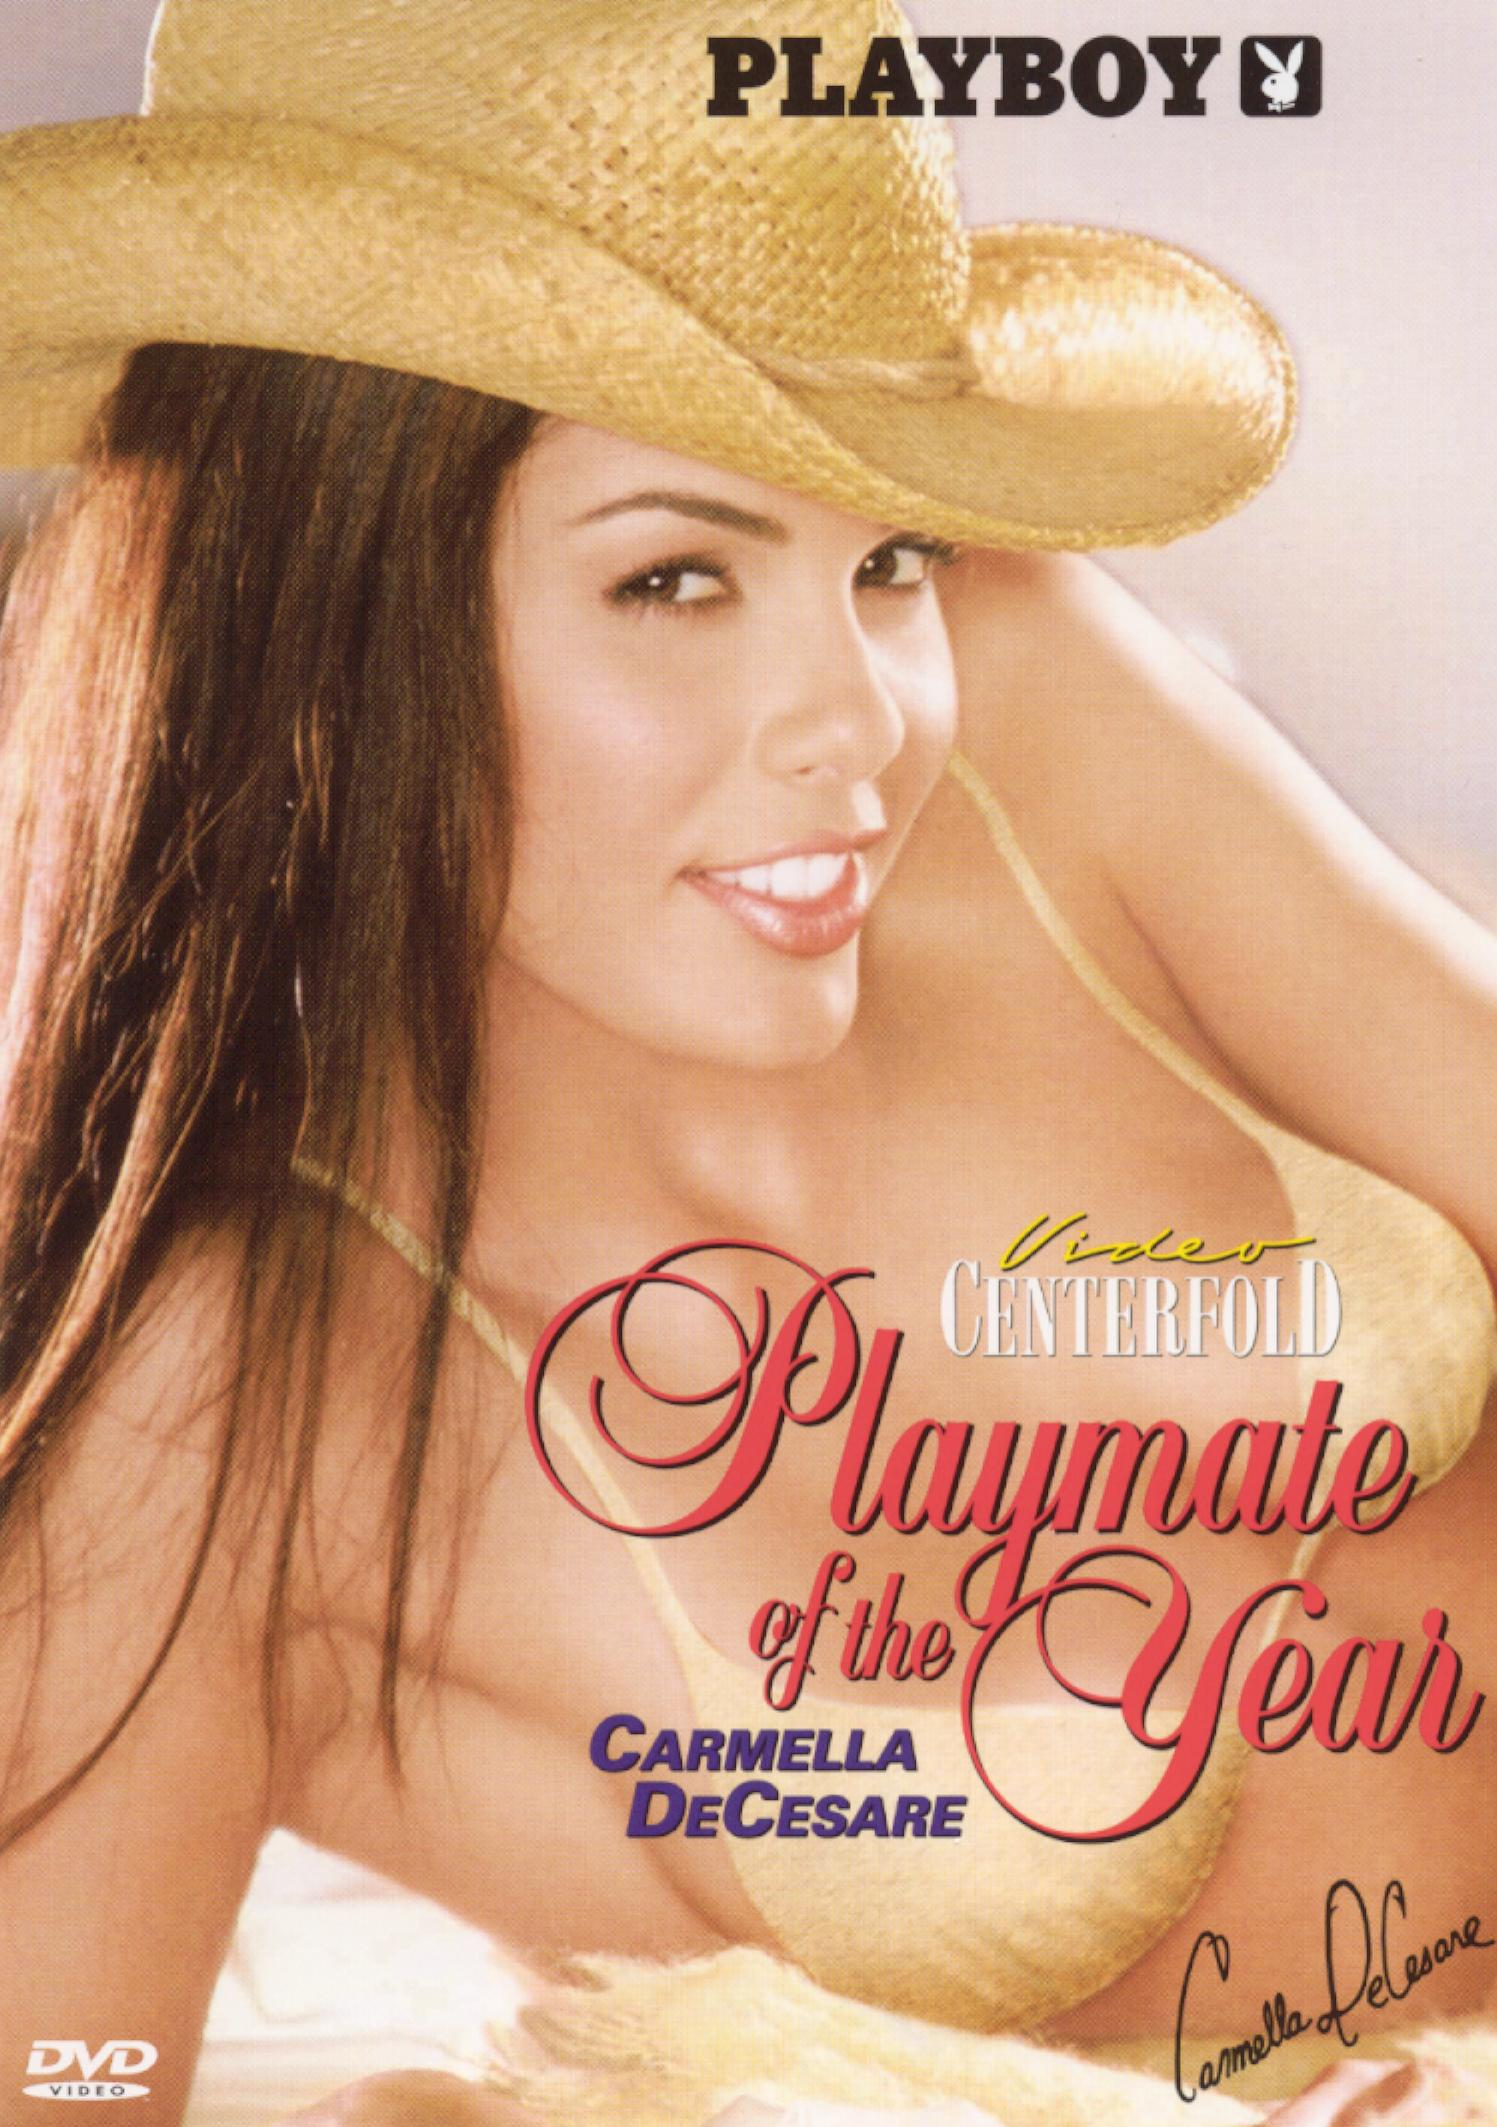 Playboy: Video Centerfold, 2004 Playmate of the Year - Carmella DeCesare